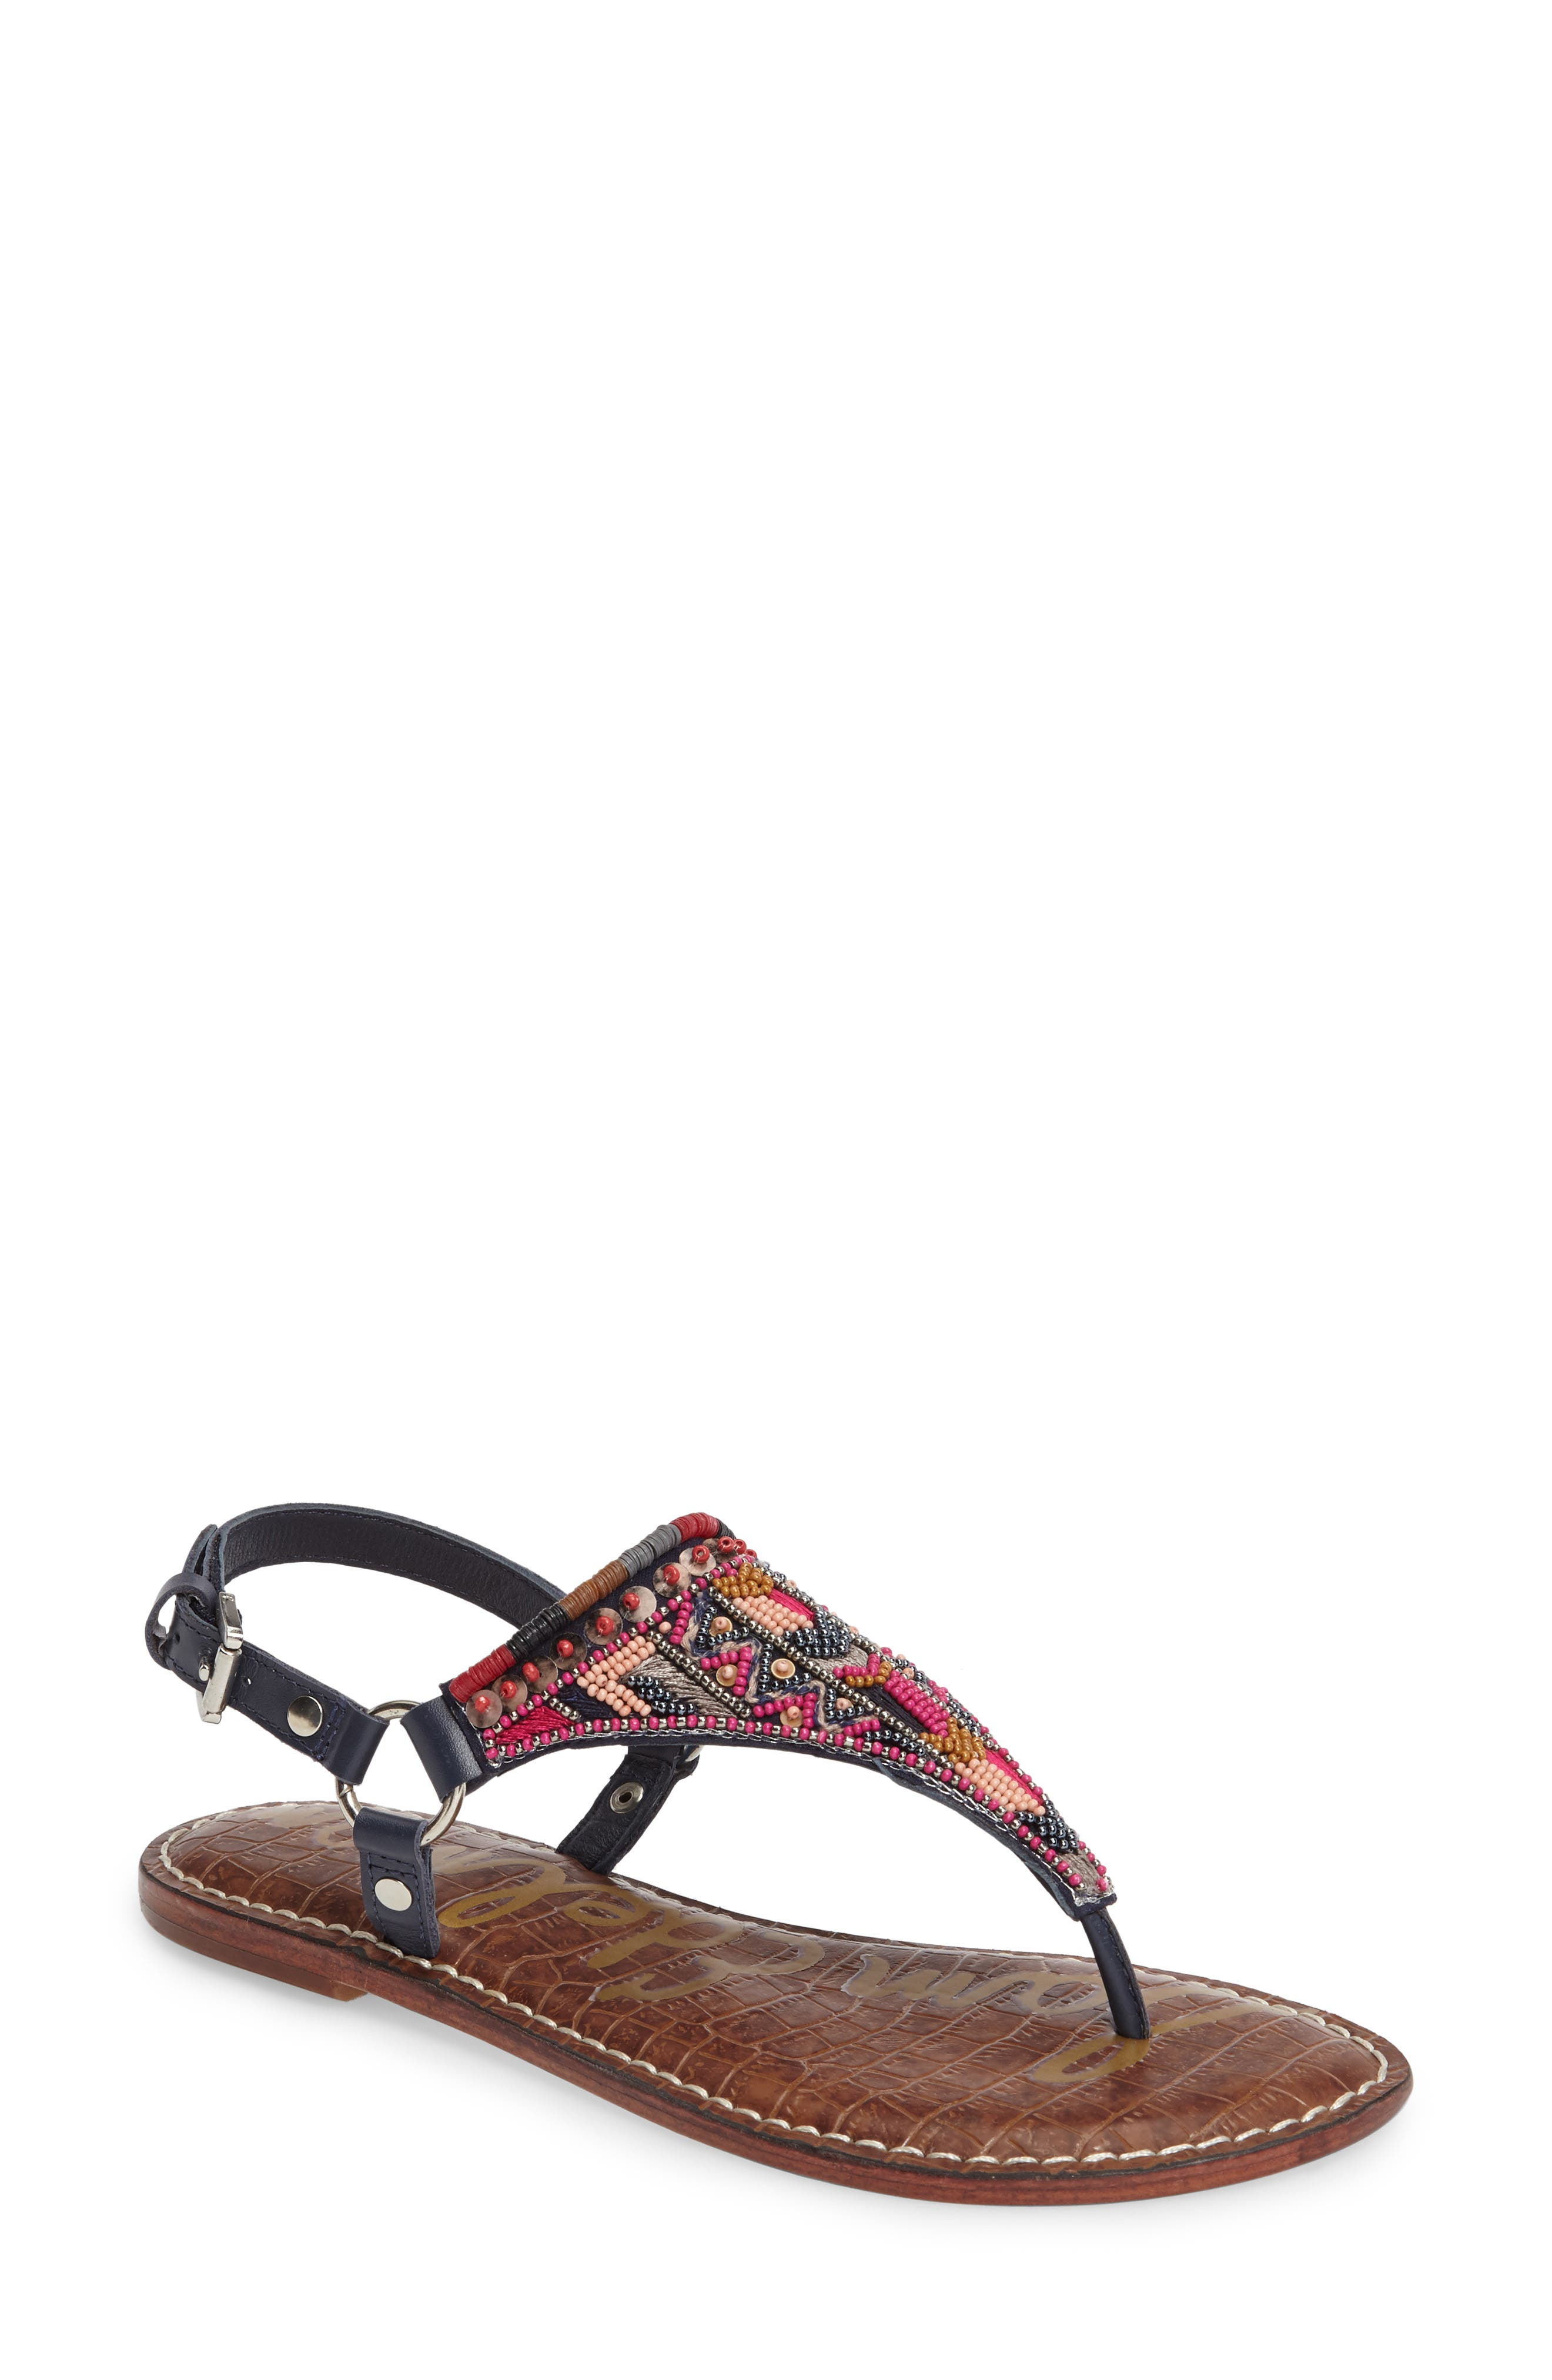 Greta Sandal,                         Main,                         color, Navy Leather